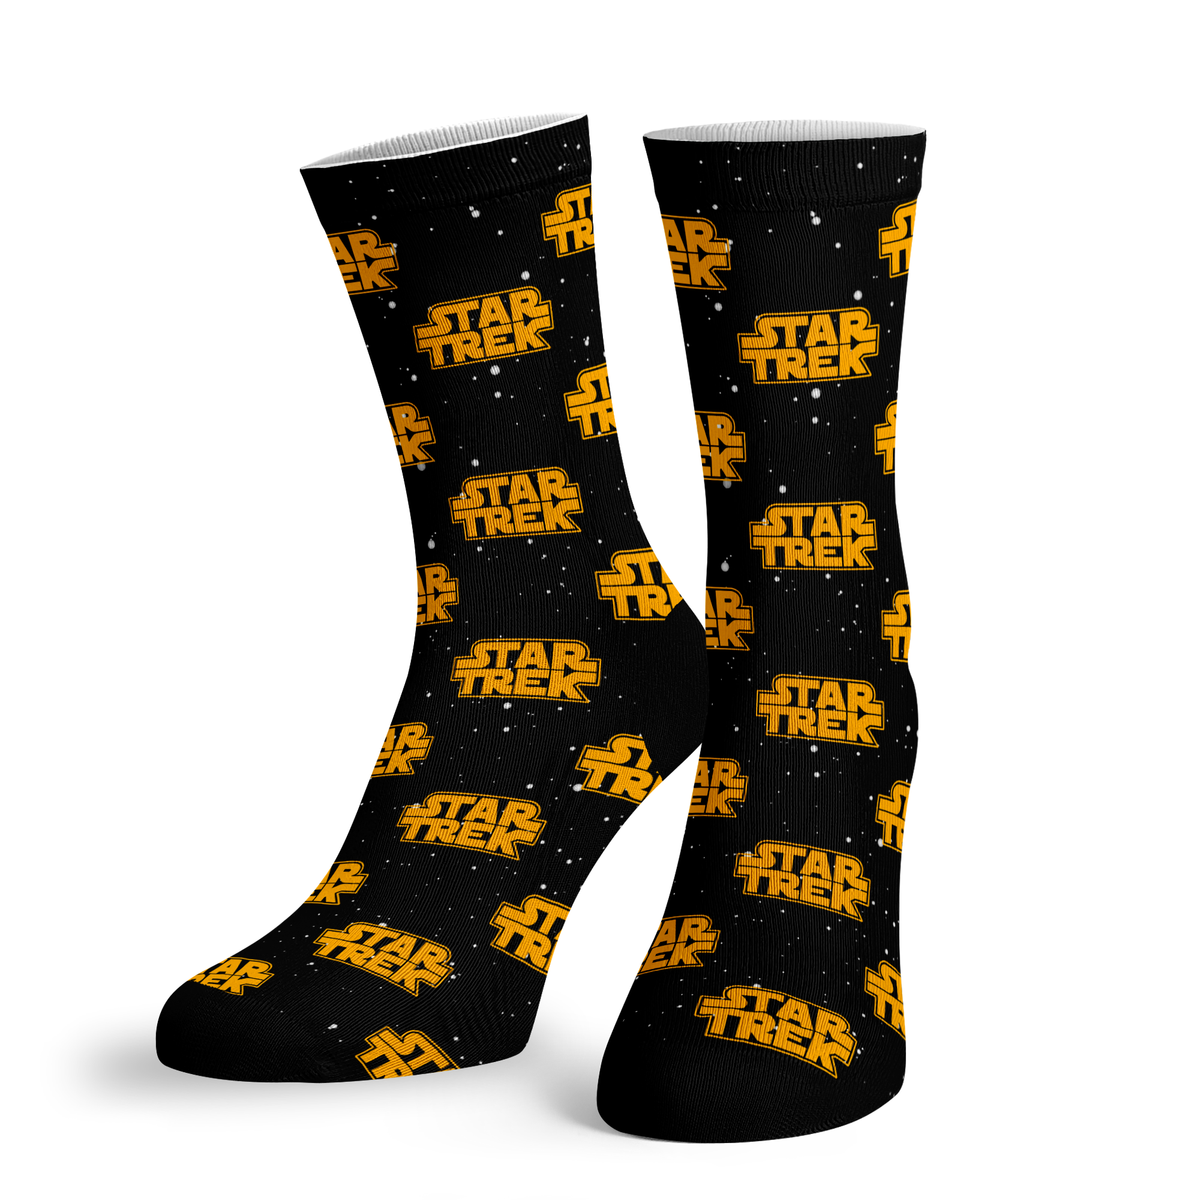 Start Trek Socks